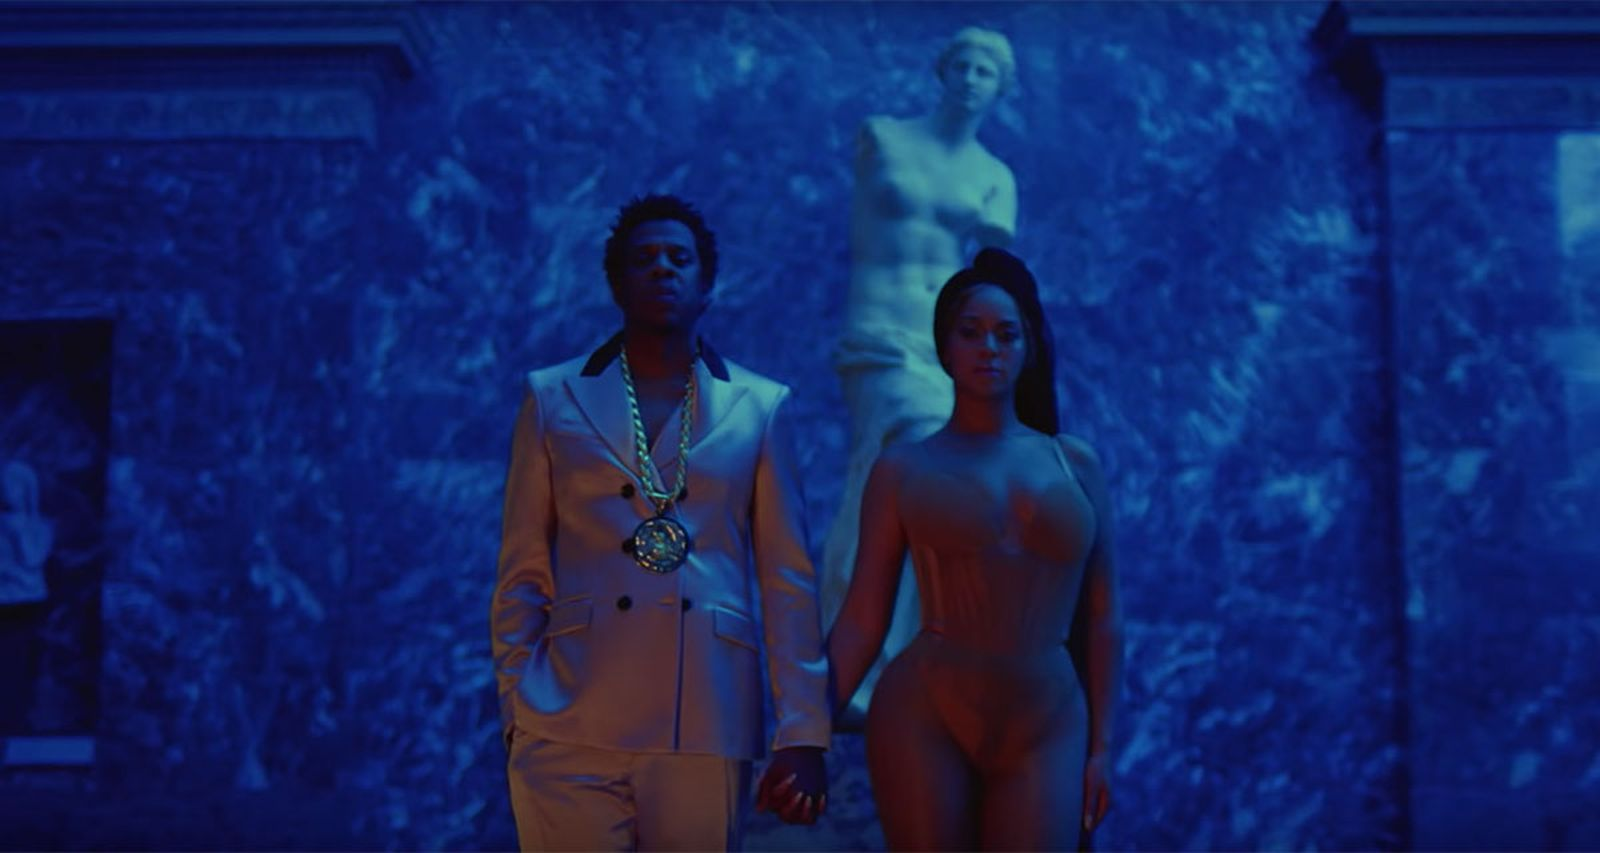 apeshit video Jay Z The Carters beyonce